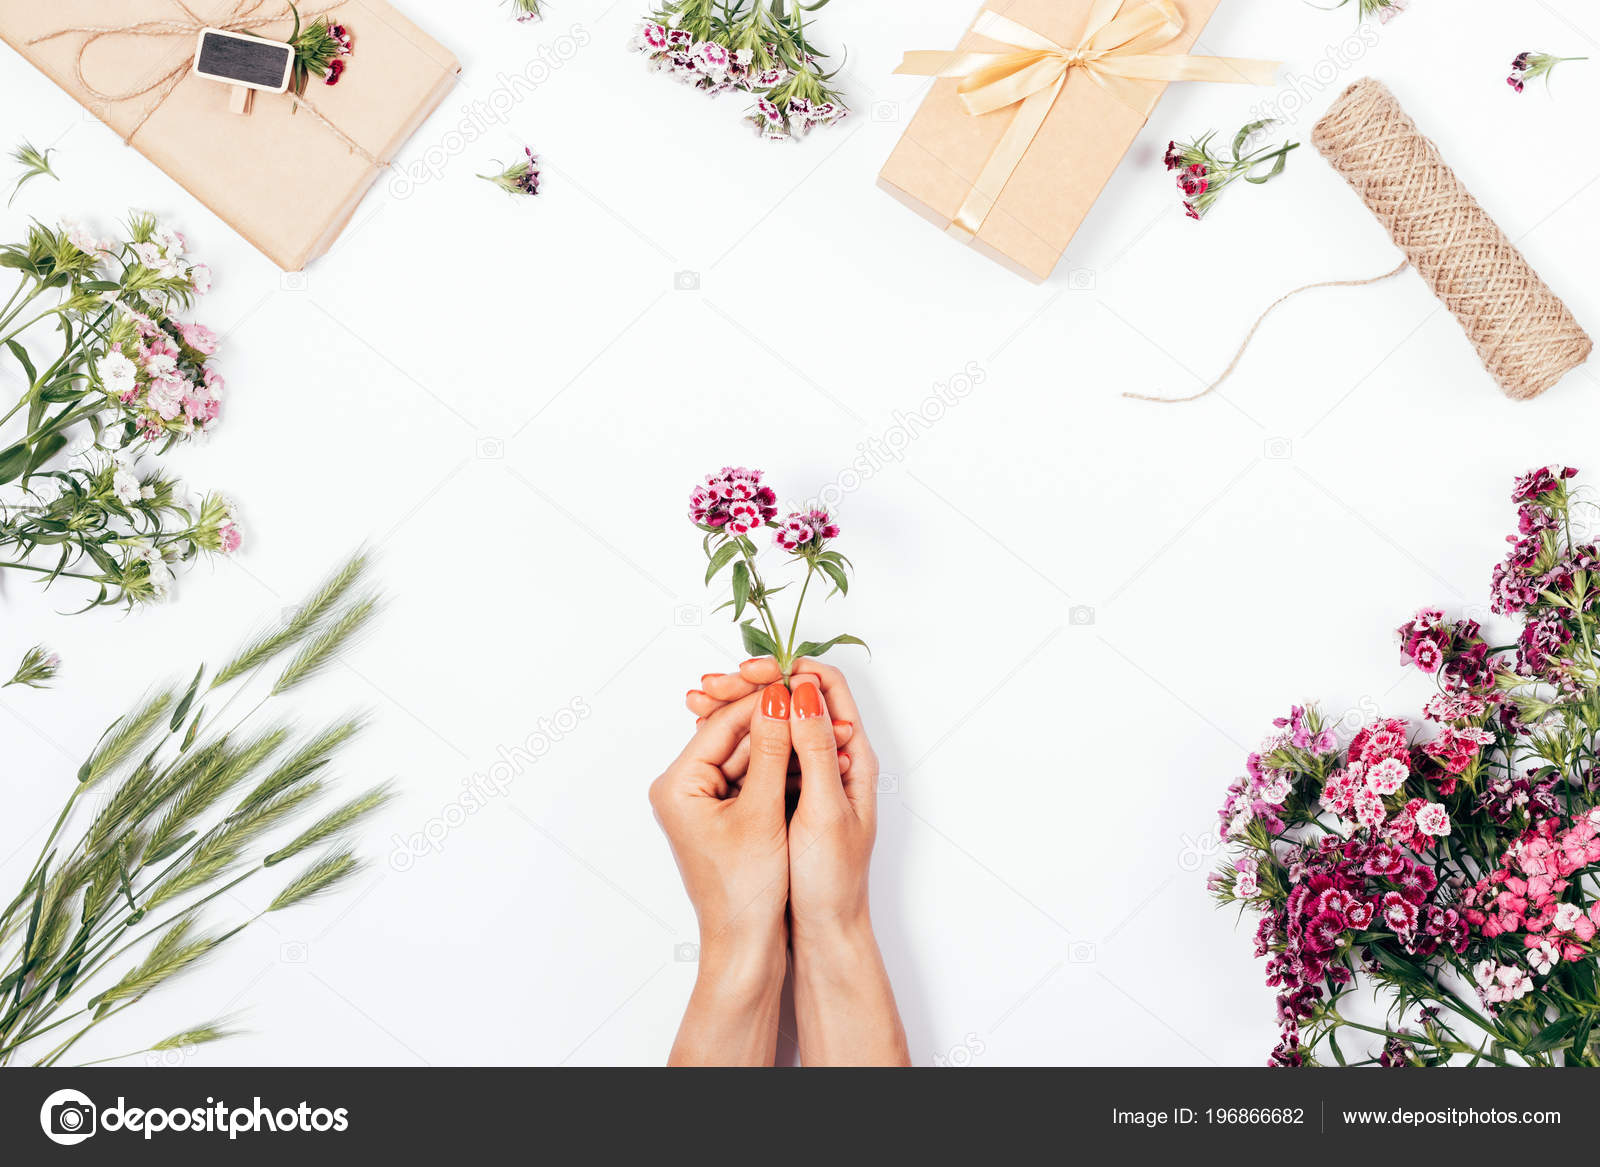 Women Hands Holding Small Flower Bouquets Gifts White Background Top